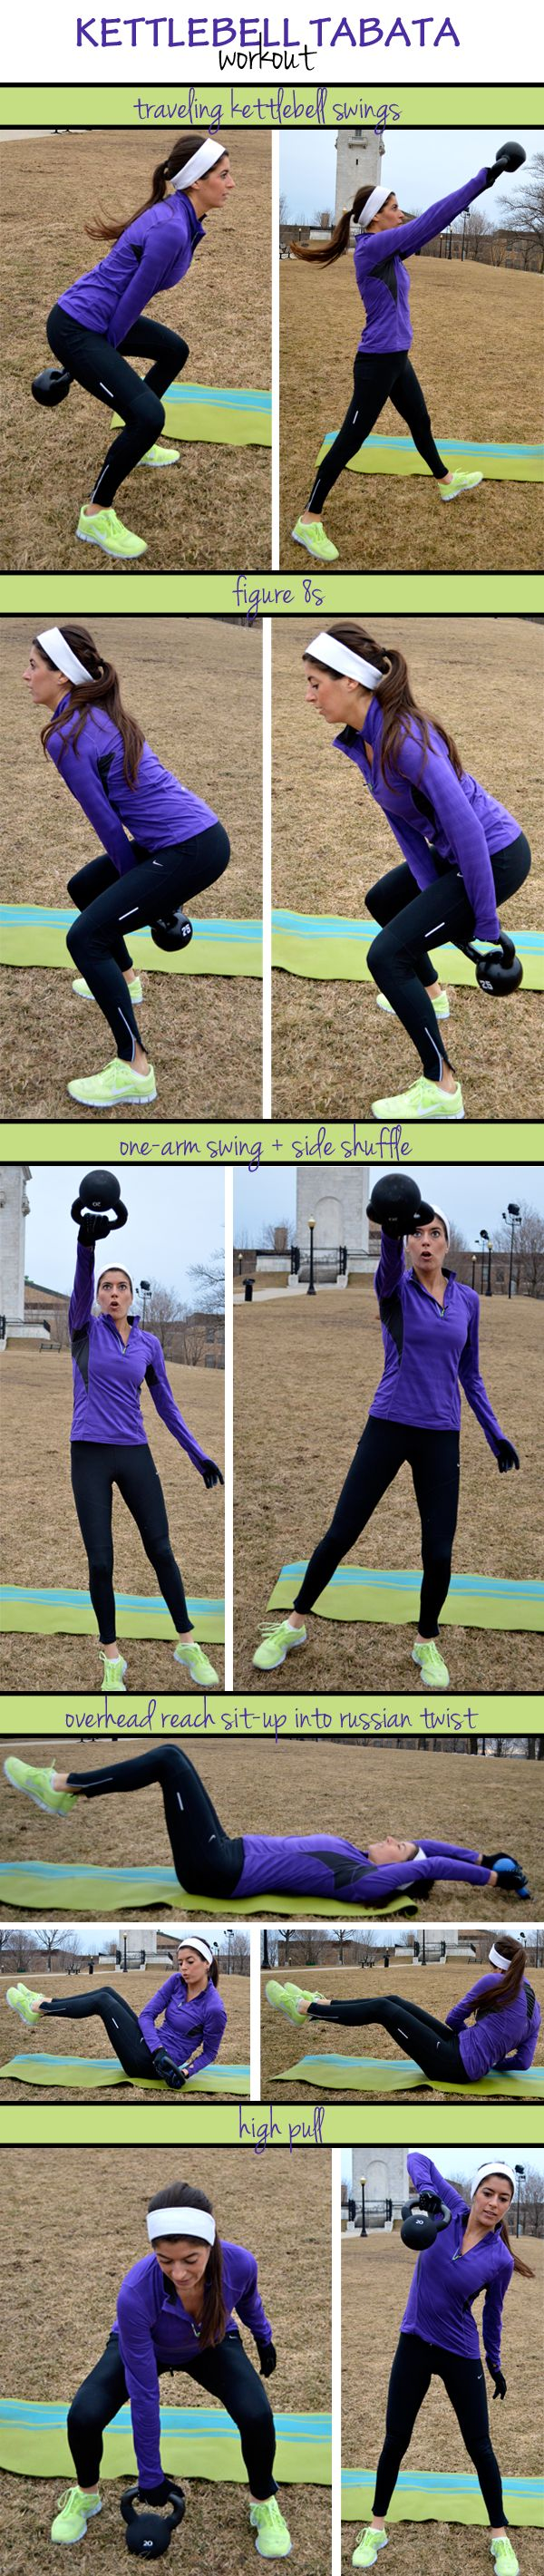 Kettlebell Tabata Workout  For each exercise, set an interval timer for 8 rounds of 20 seconds of work and 10 seconds of rest. When the four minutes is up, move on to the next exercise.